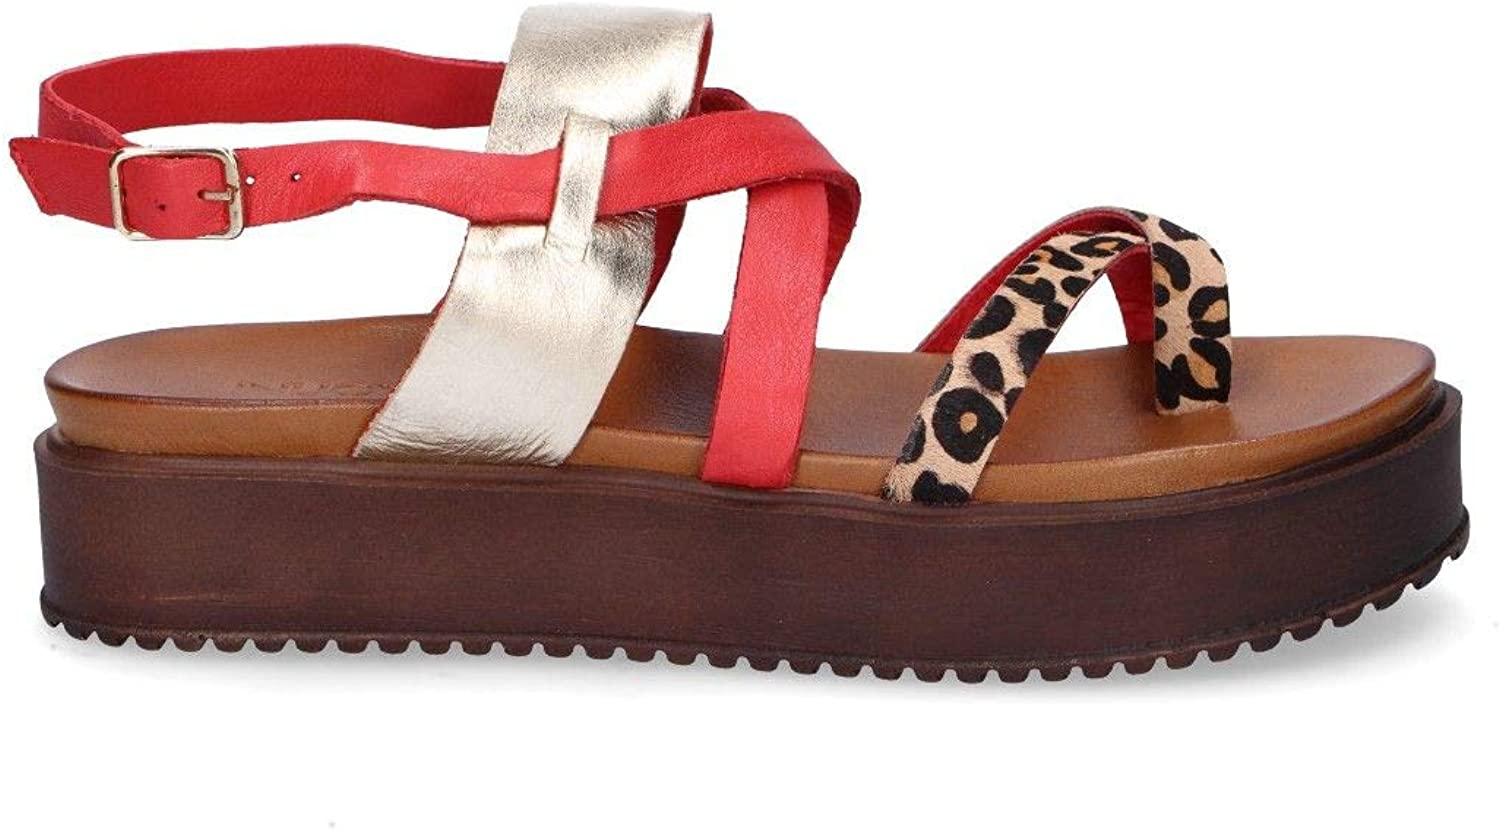 Inuovo Women's 7159RED Red Leather Sandals